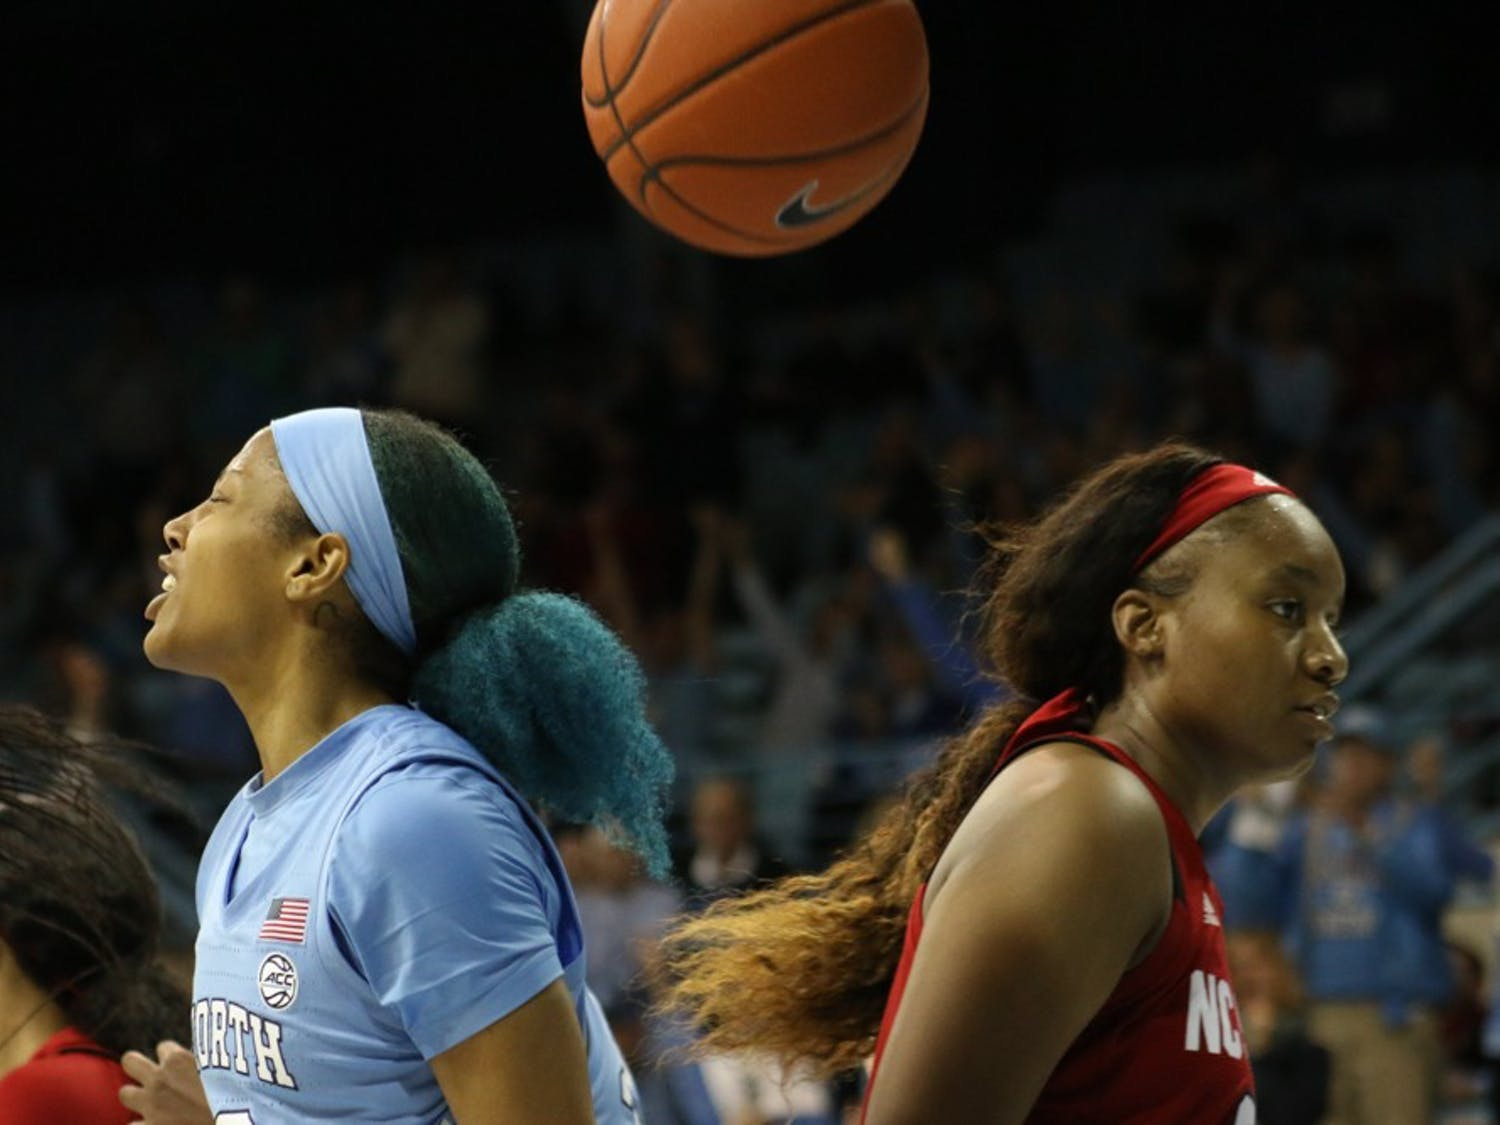 UNC redshirt senior guard Madinah Muhammad (3) cheers after shooting a basket during a game against N.C. State on Thursday, Jan. 9, 2020 in Carmichael Arena. UNC won 66-60.